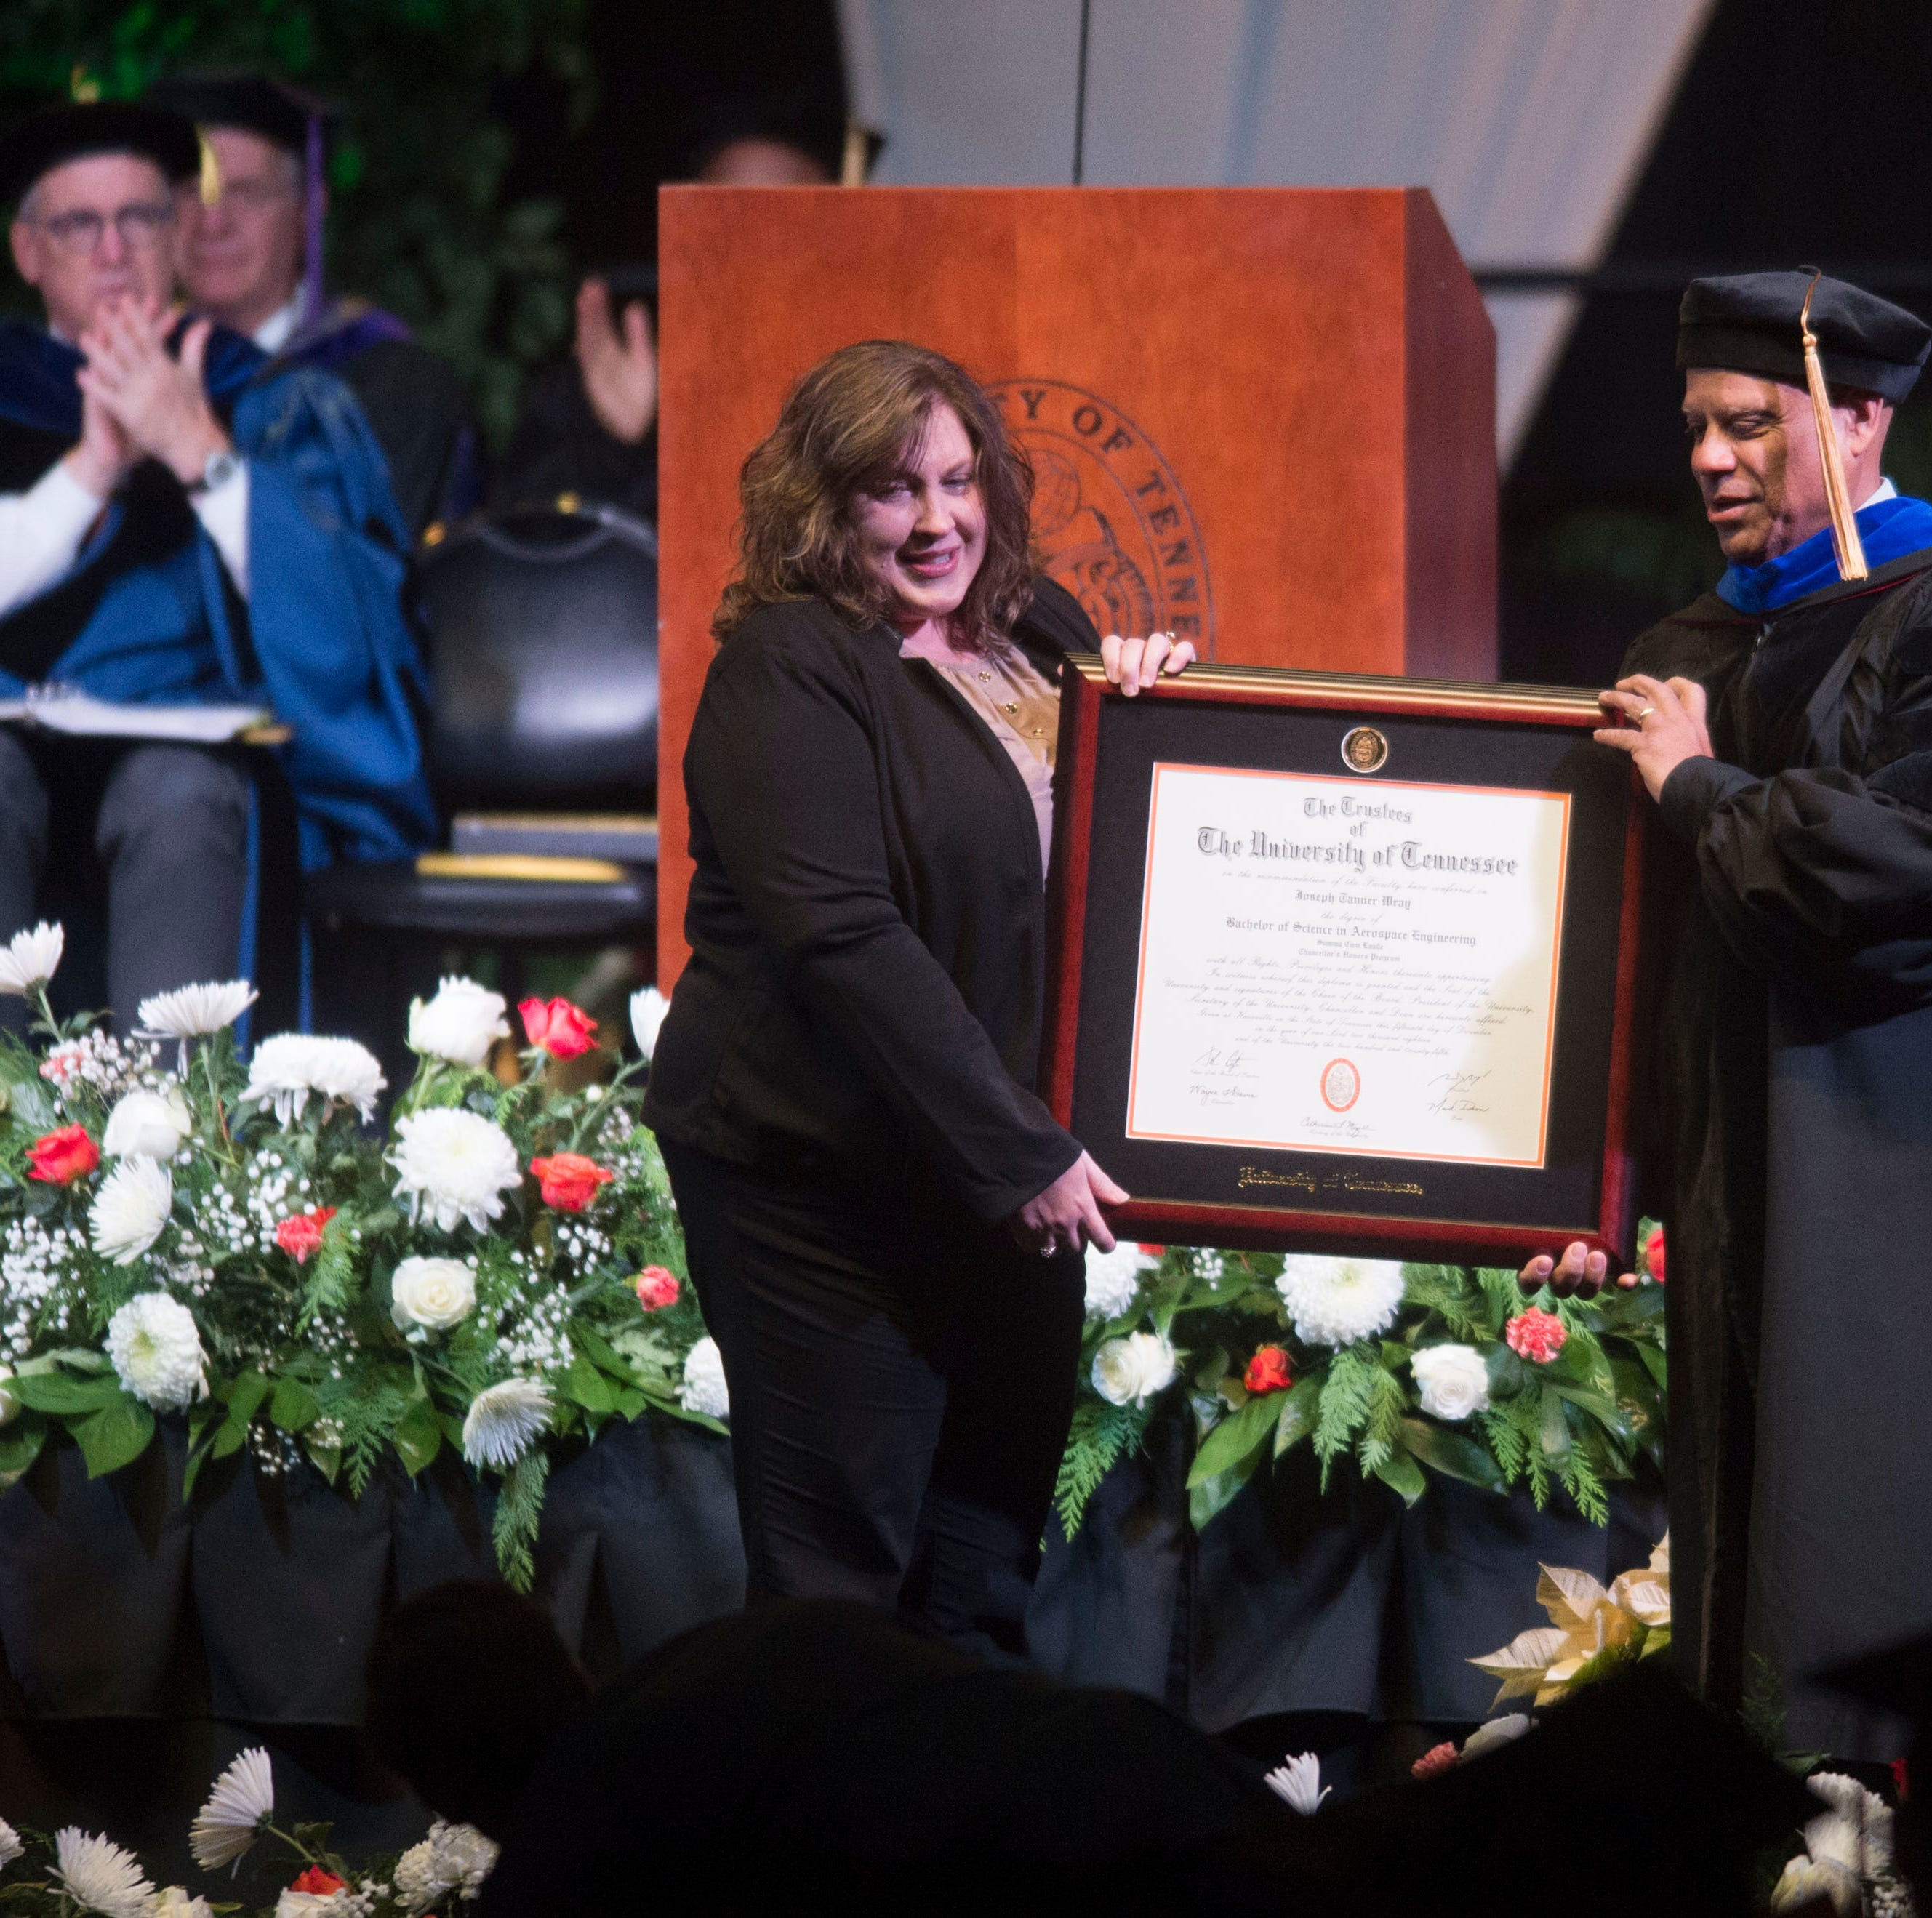 UT's commencement: A cancer patient honored, a military homecoming, and a posthumous degree